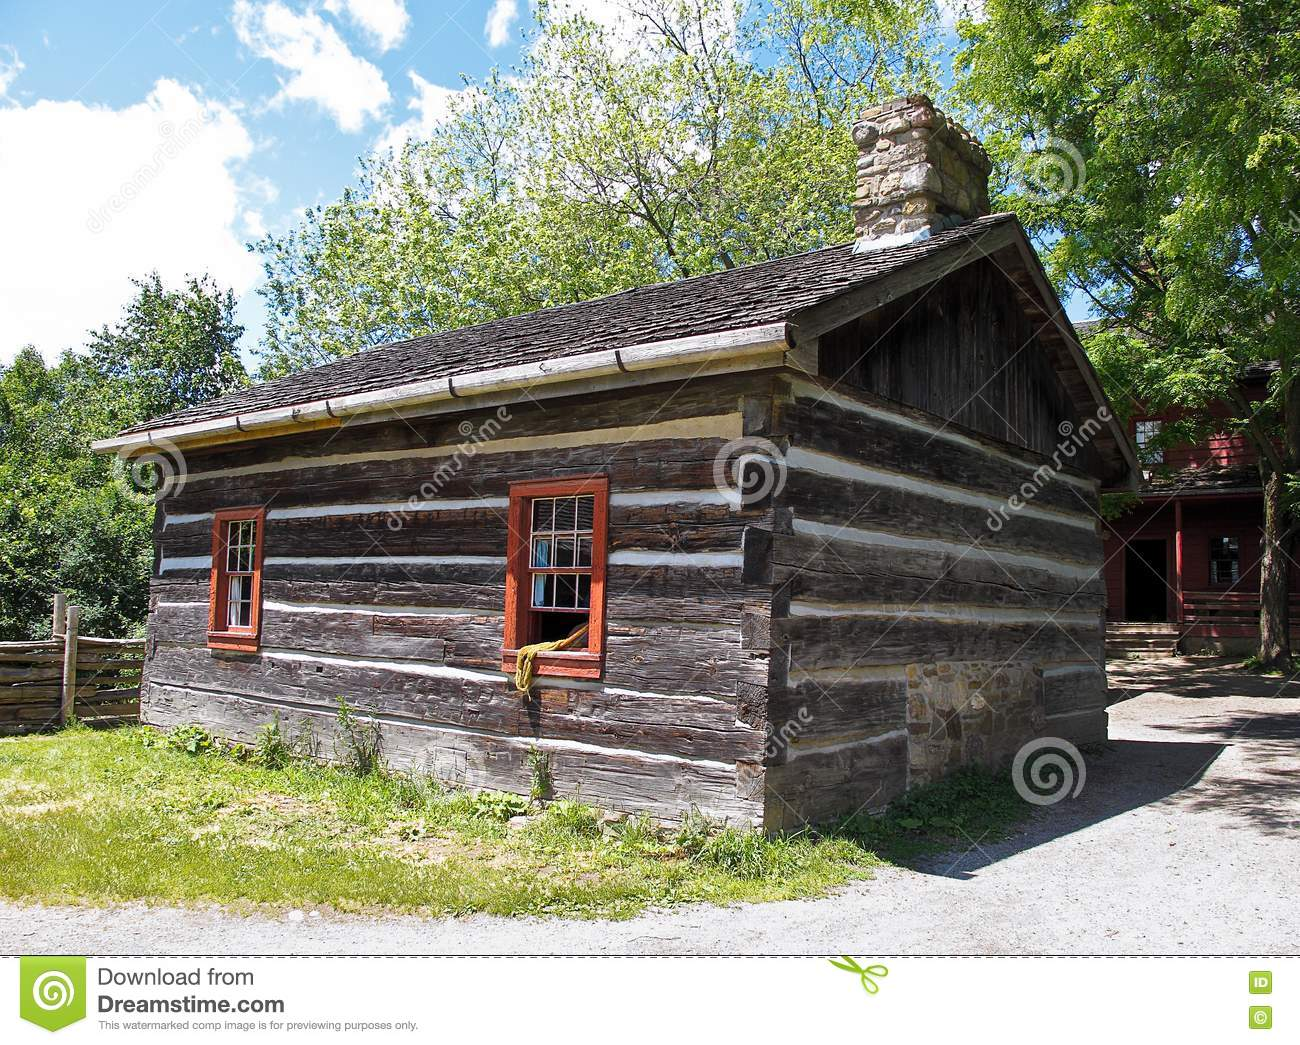 1000 images about houses on pinterest old cabins blue ridge log cabins and cabin. Black Bedroom Furniture Sets. Home Design Ideas